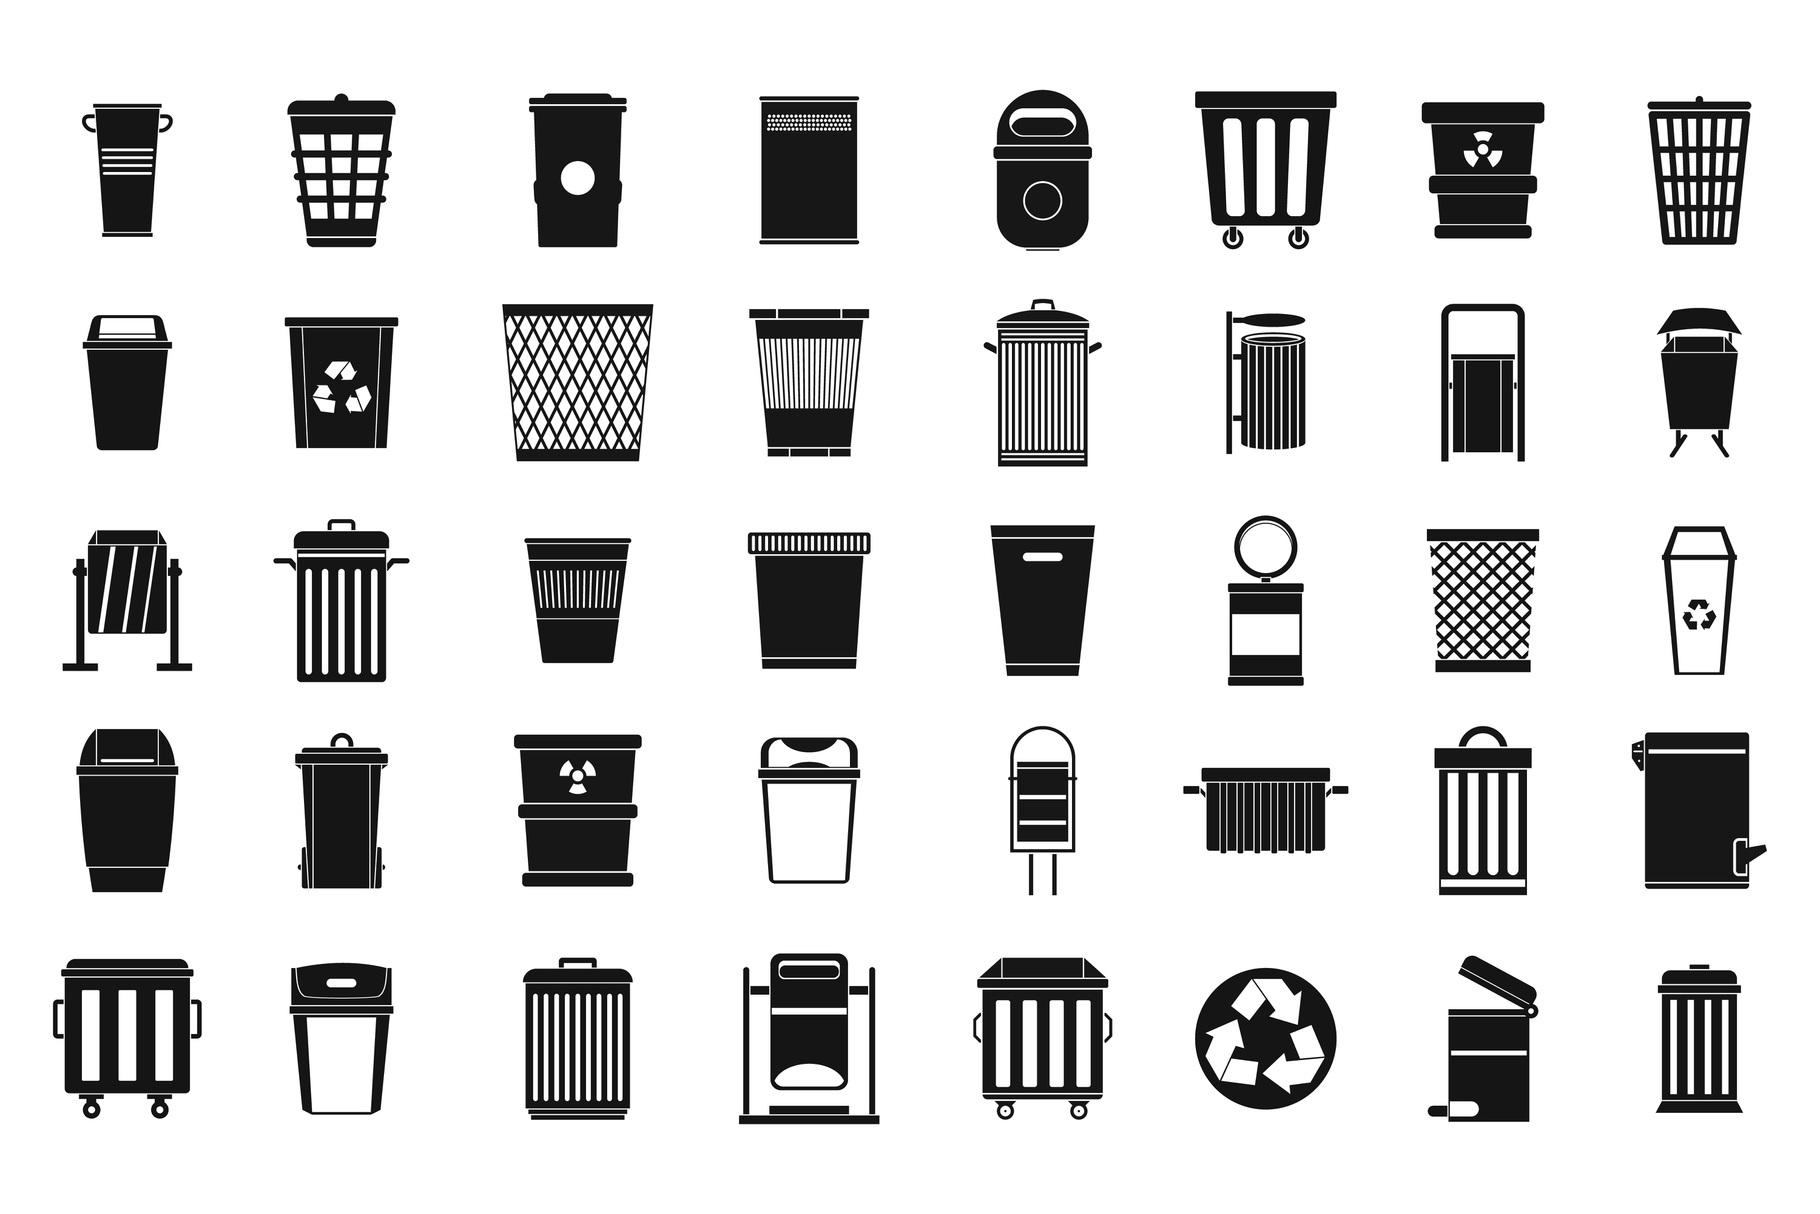 Garbage can icon set, simple style example image 1